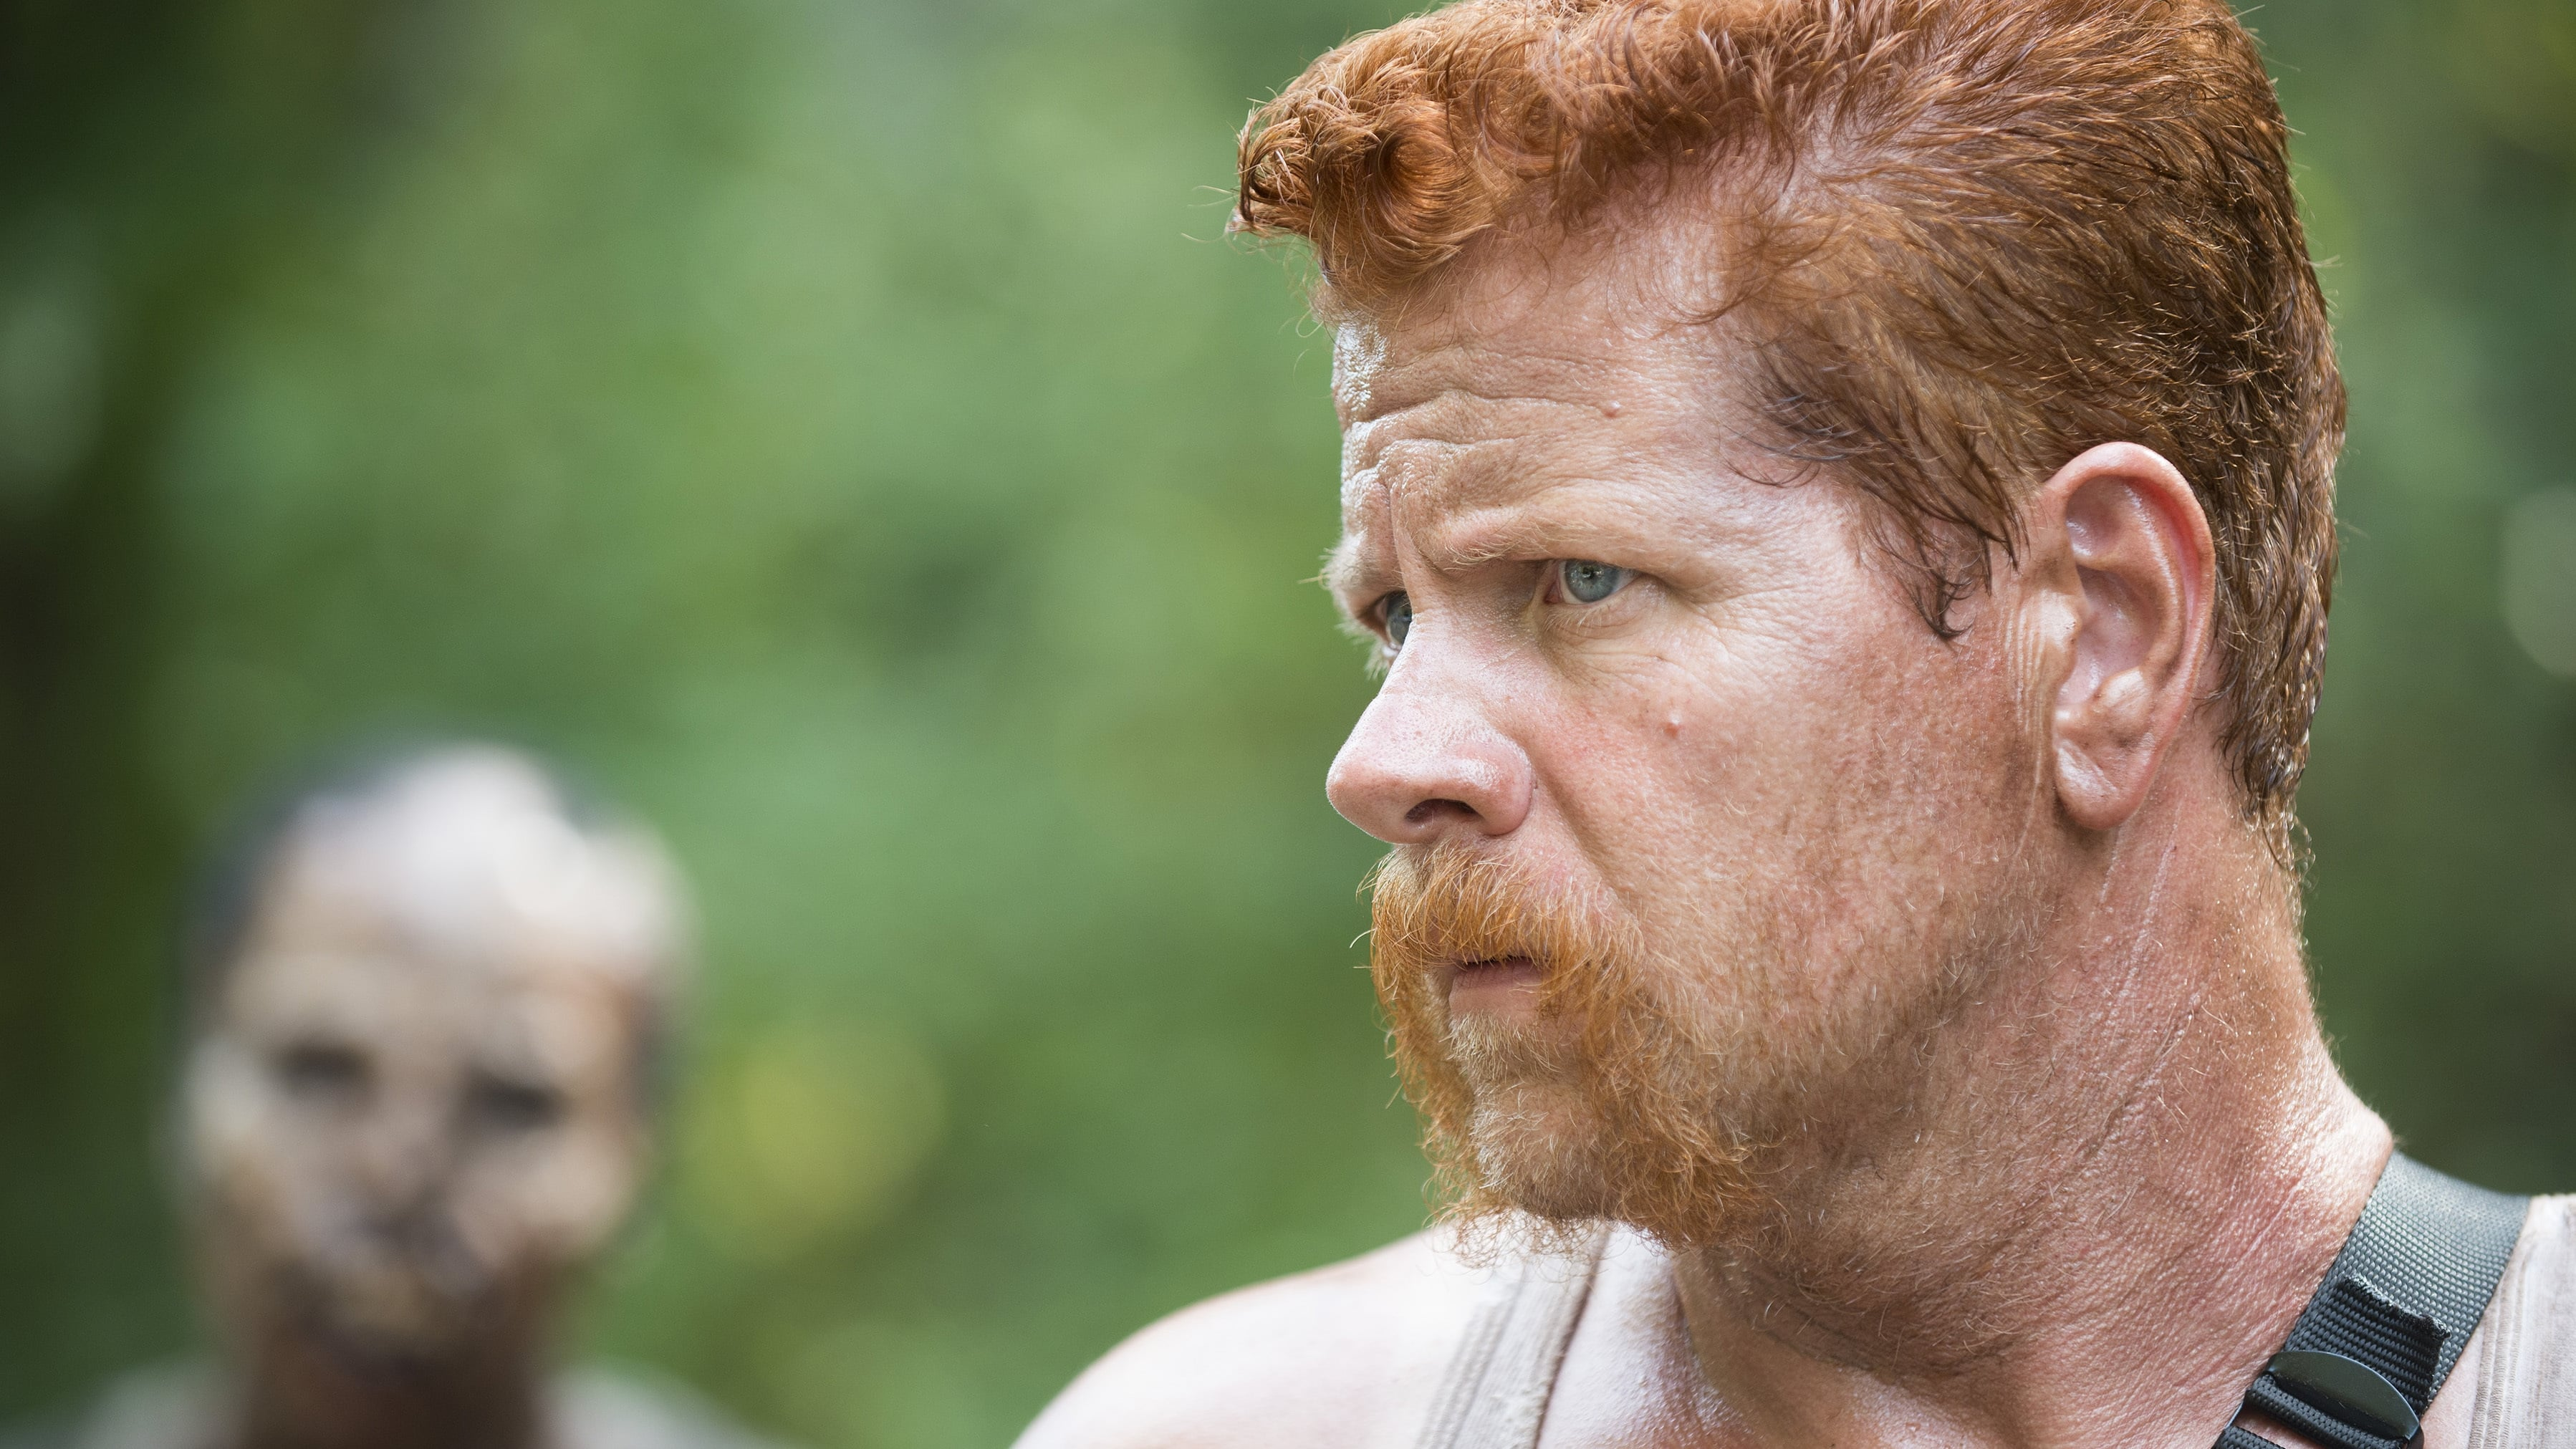 The Walking Dead - Season 5 Episode 11 : The Distance